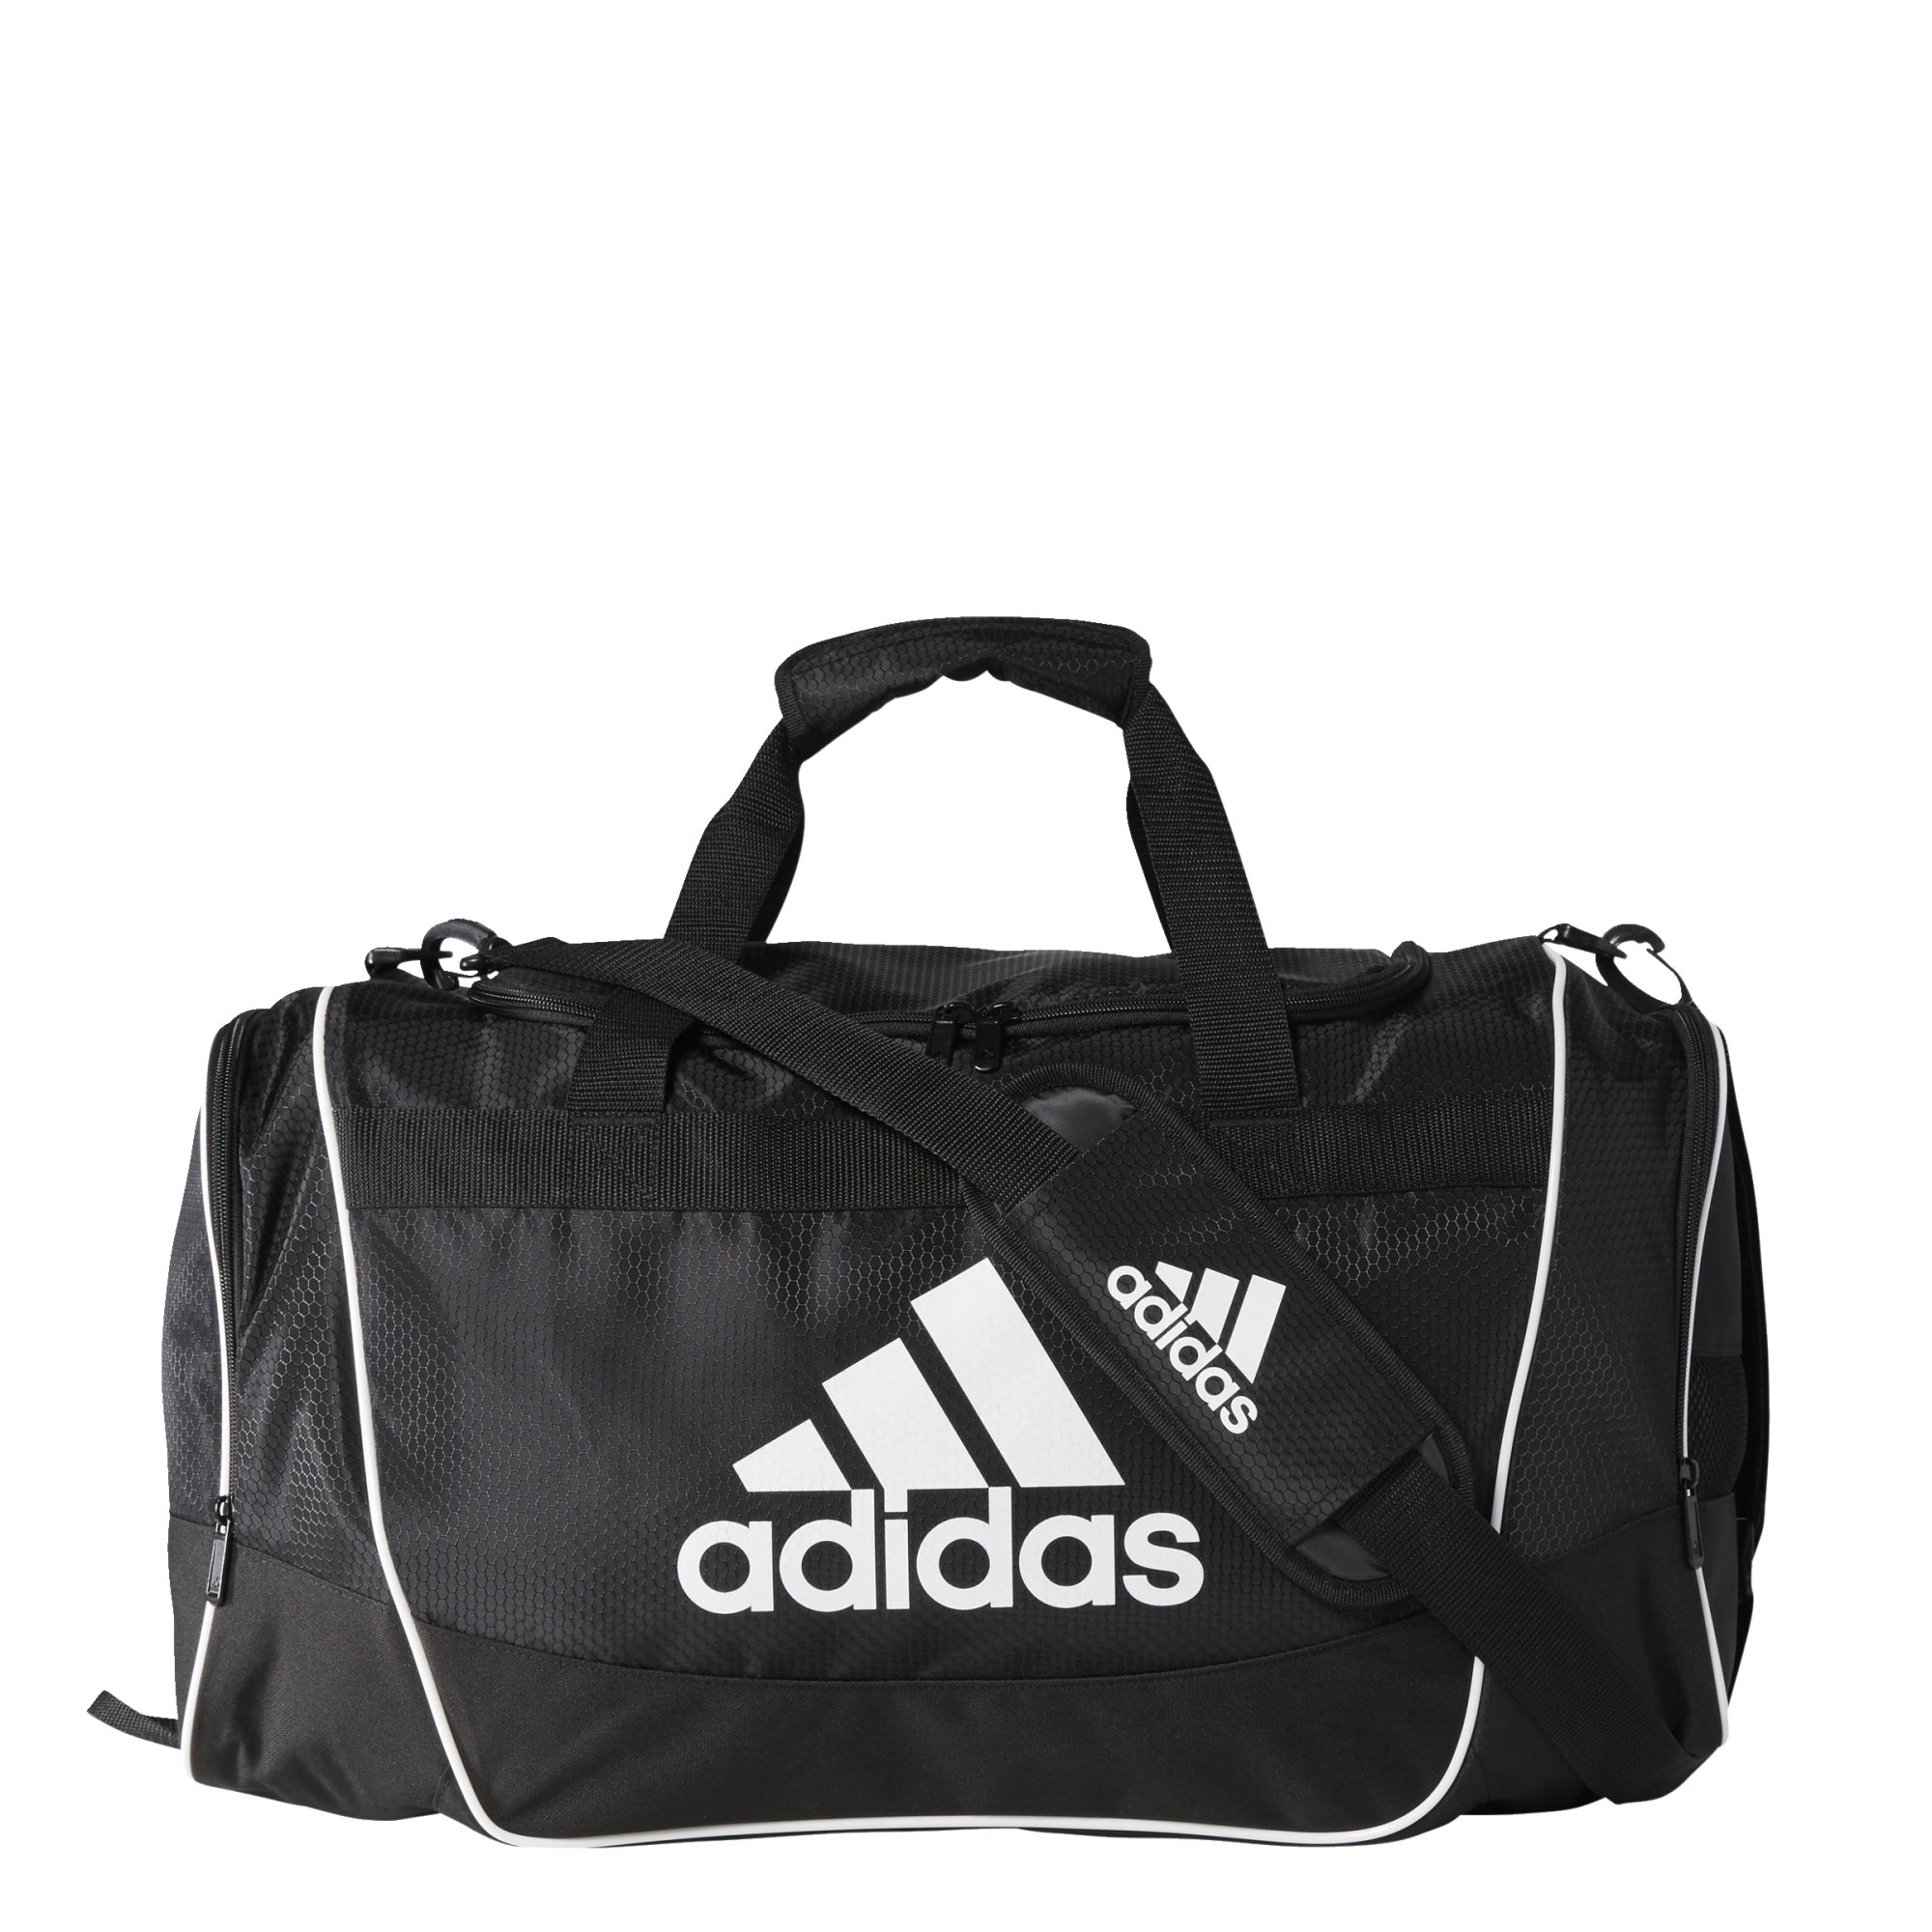 Galleon - Adidas Defender II Duffel Bag (Medium) 4081b2081a71a